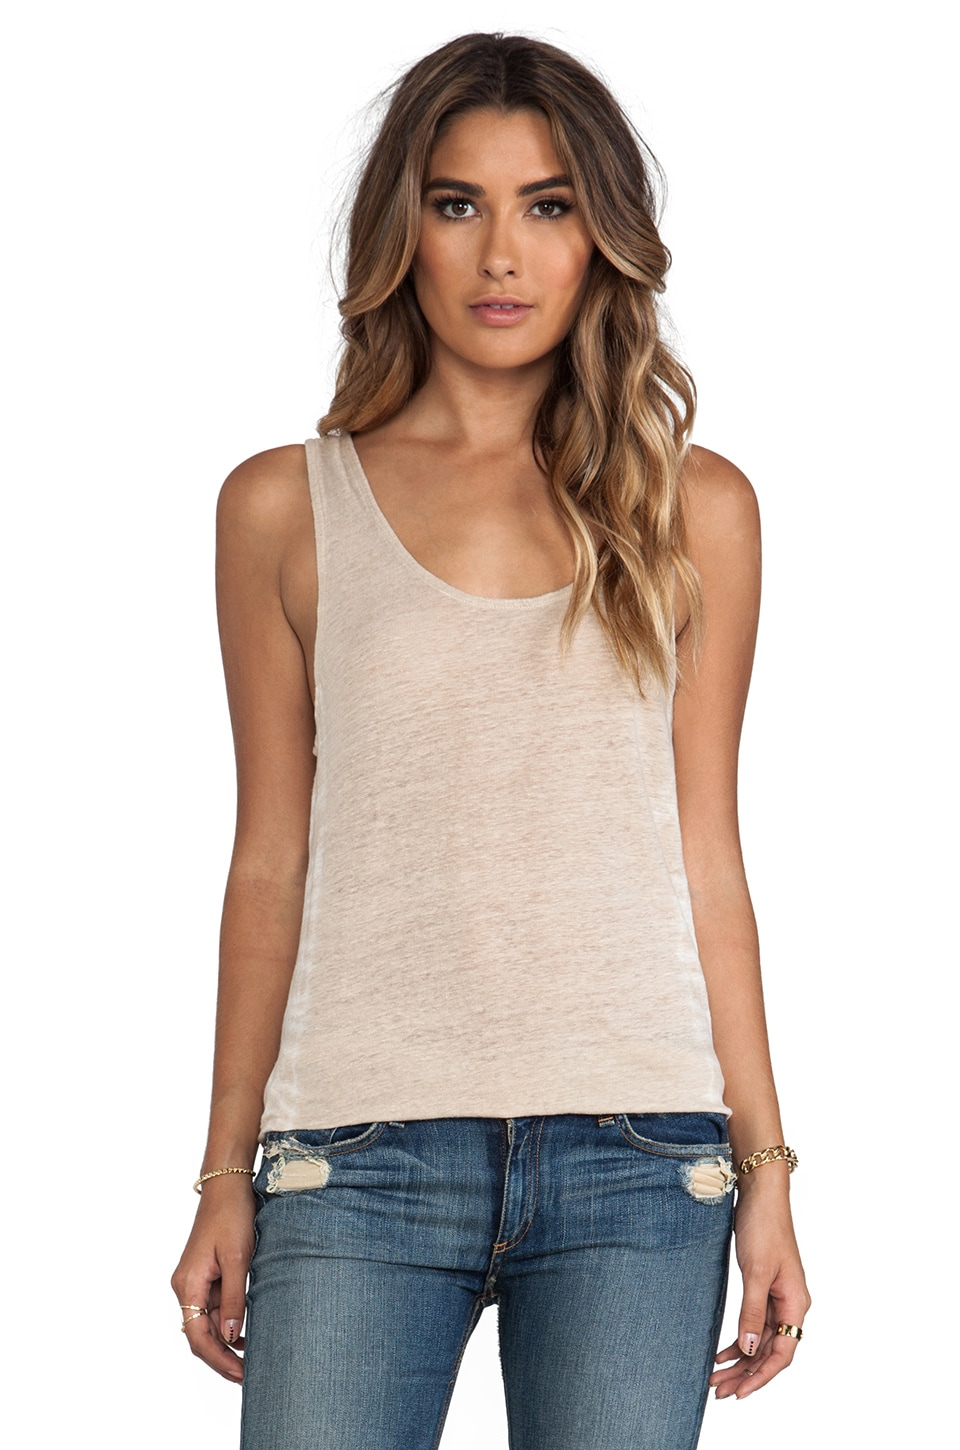 Gypsy 05 Deep U-Neck Tank in Bone